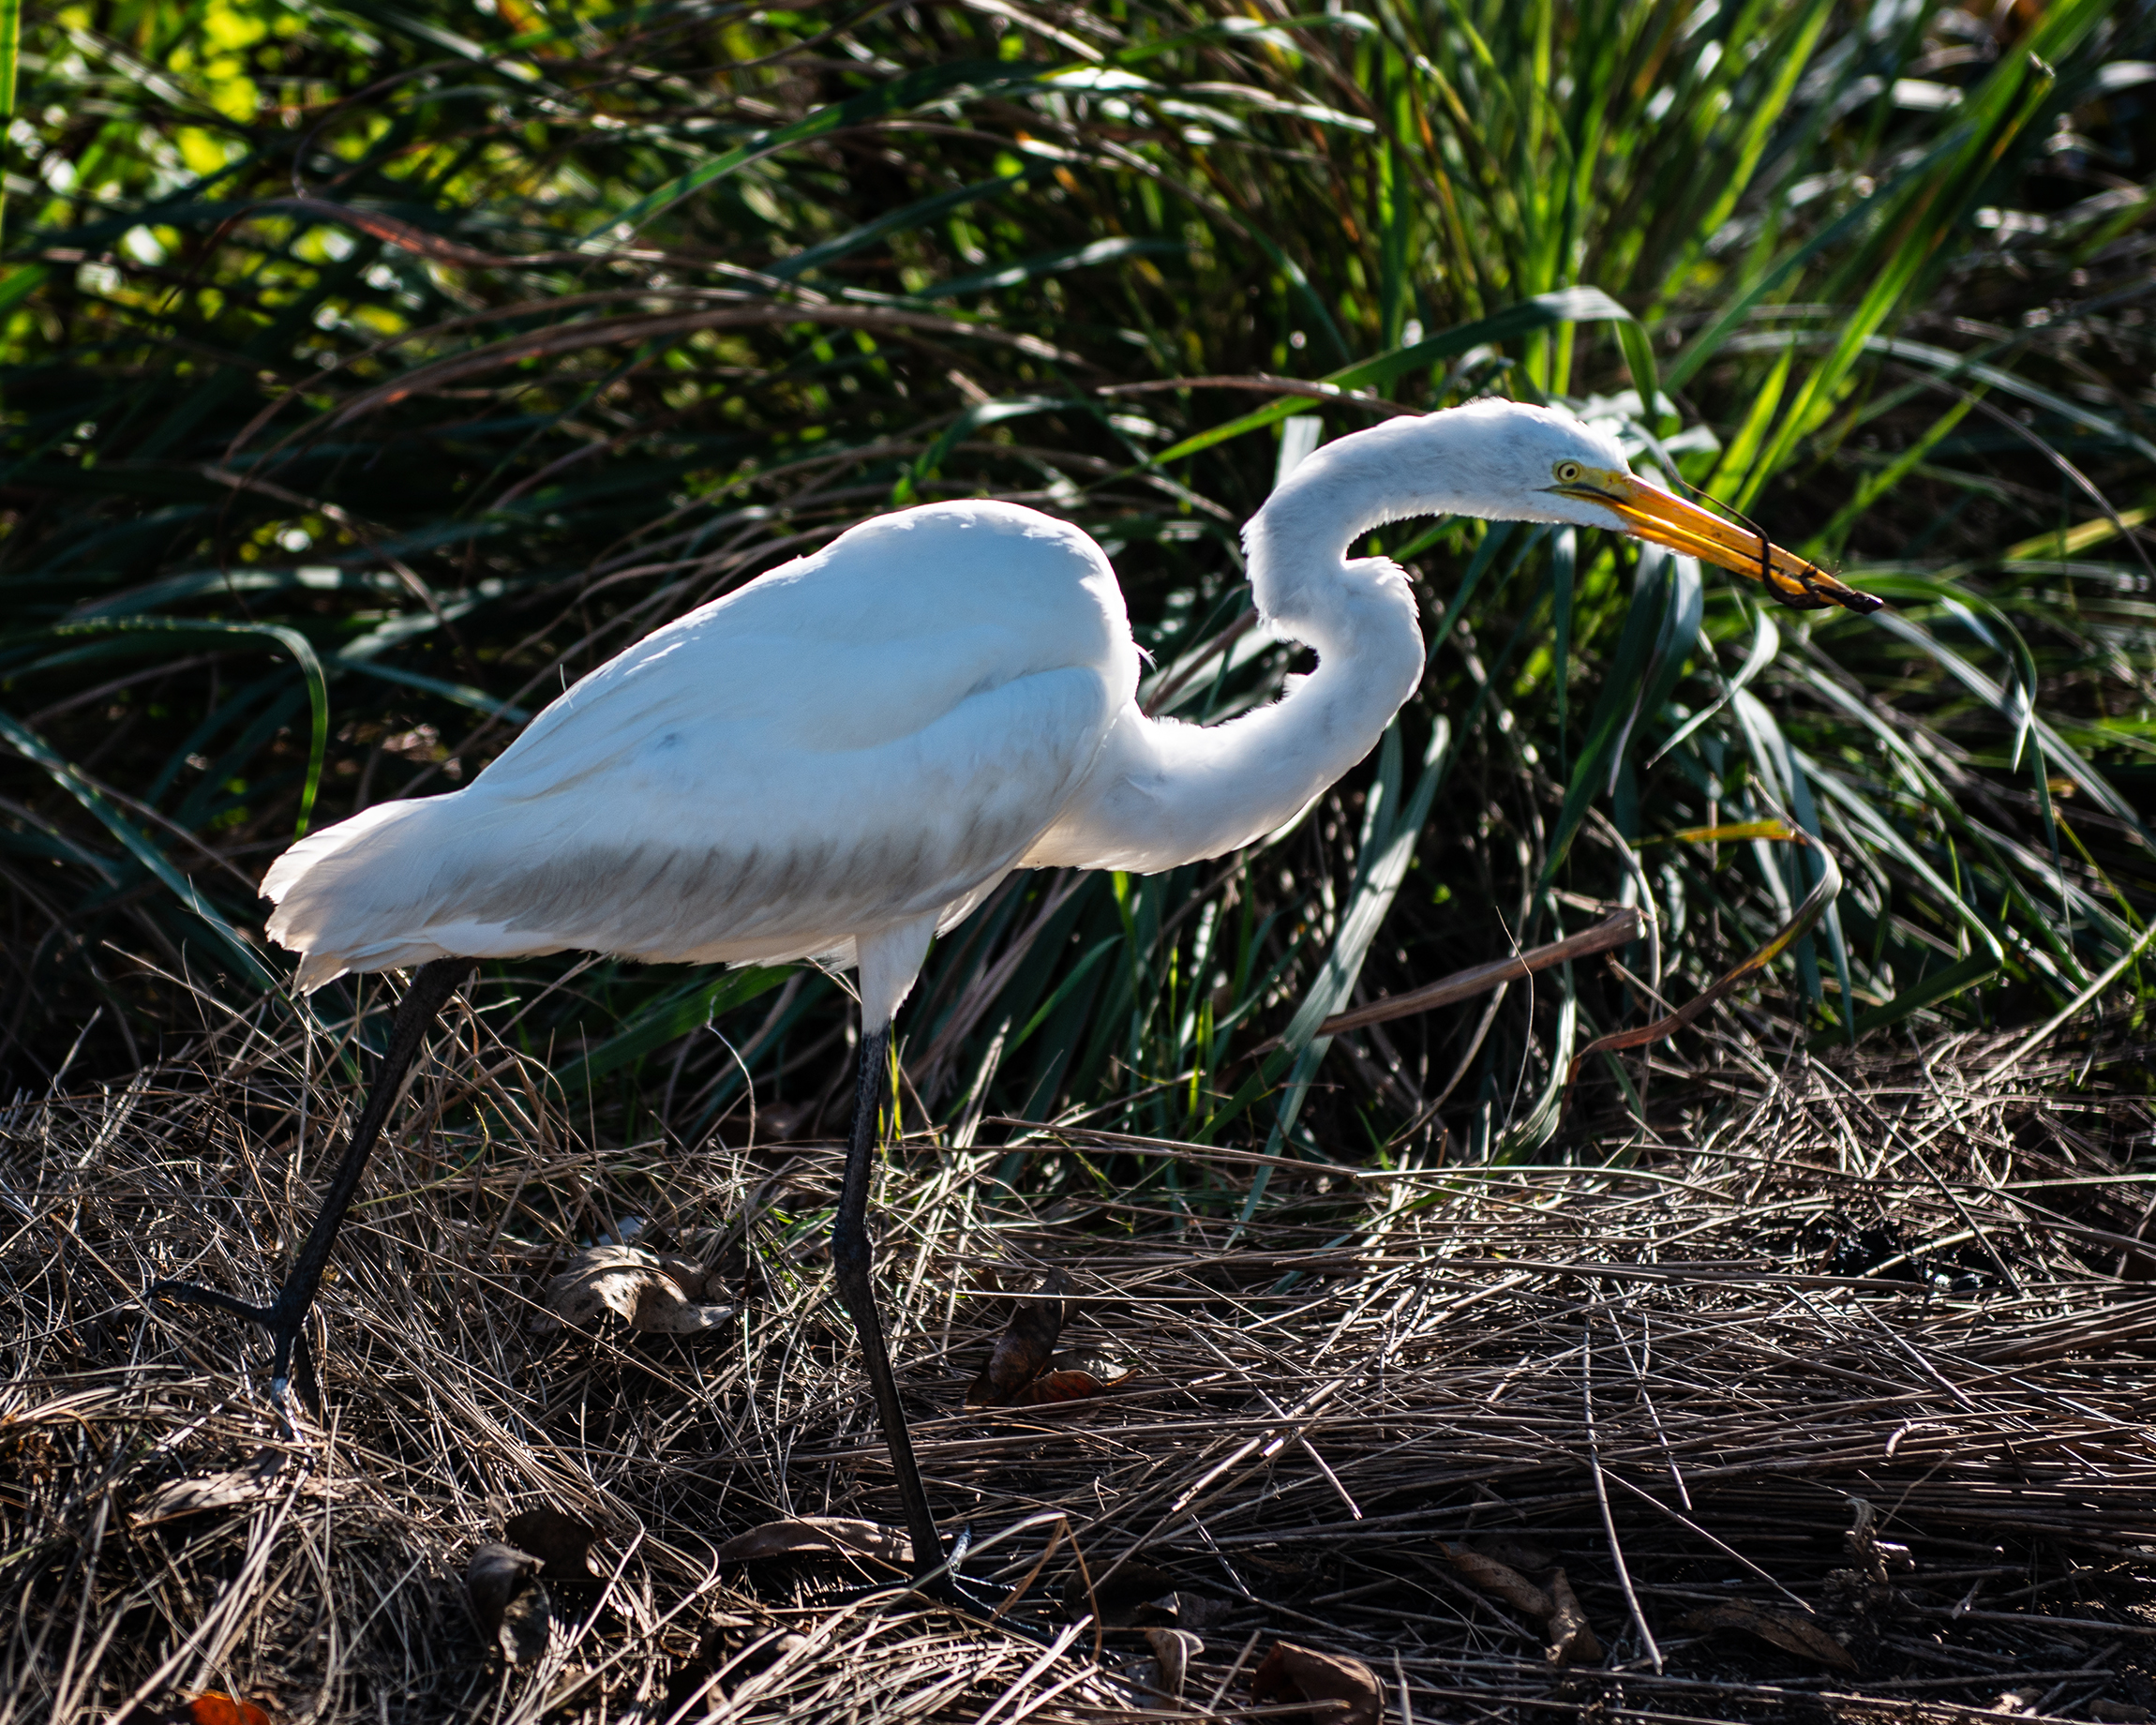 #greategret, #lizard, #catch, #freshcatch, #livecatch, #foodchain, #backlit, #nikon, #naplesbotanicalgarden, #botanicalgarden, #wildlife, #wildlifephotography, #egret, #nature, #florida